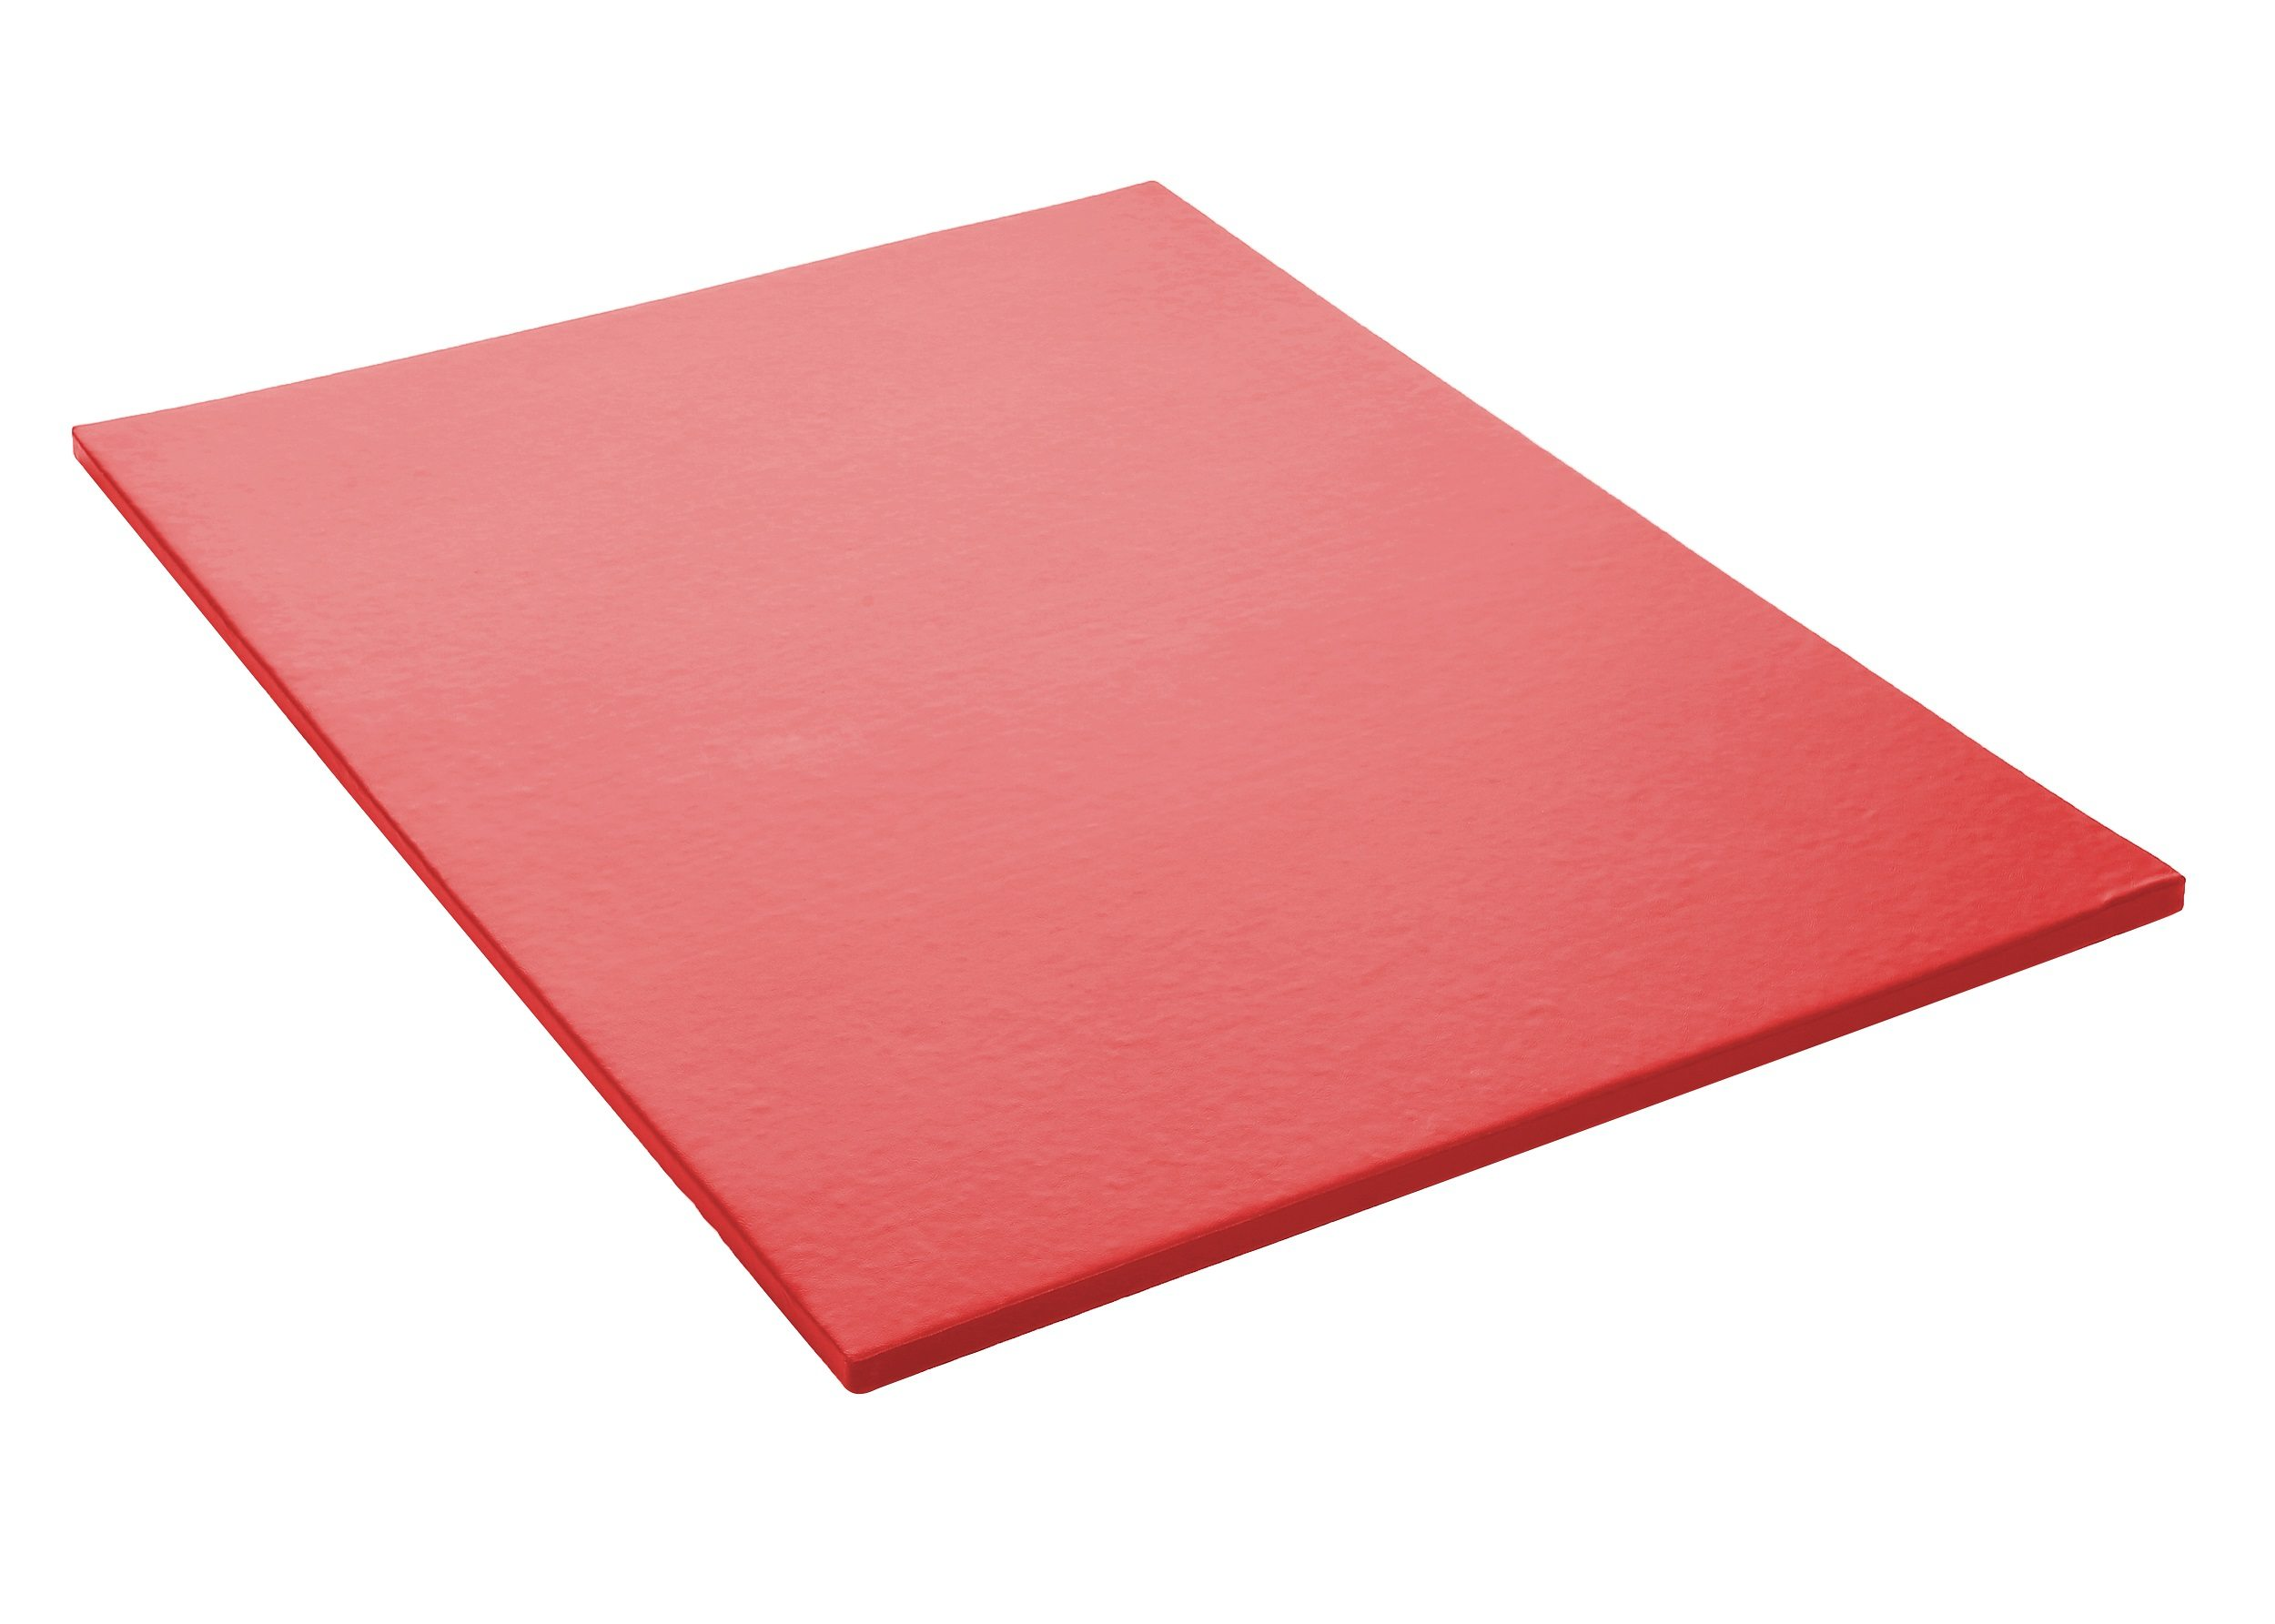 Promat Agility Gymnastics Mat Foams4sports Gym Mats